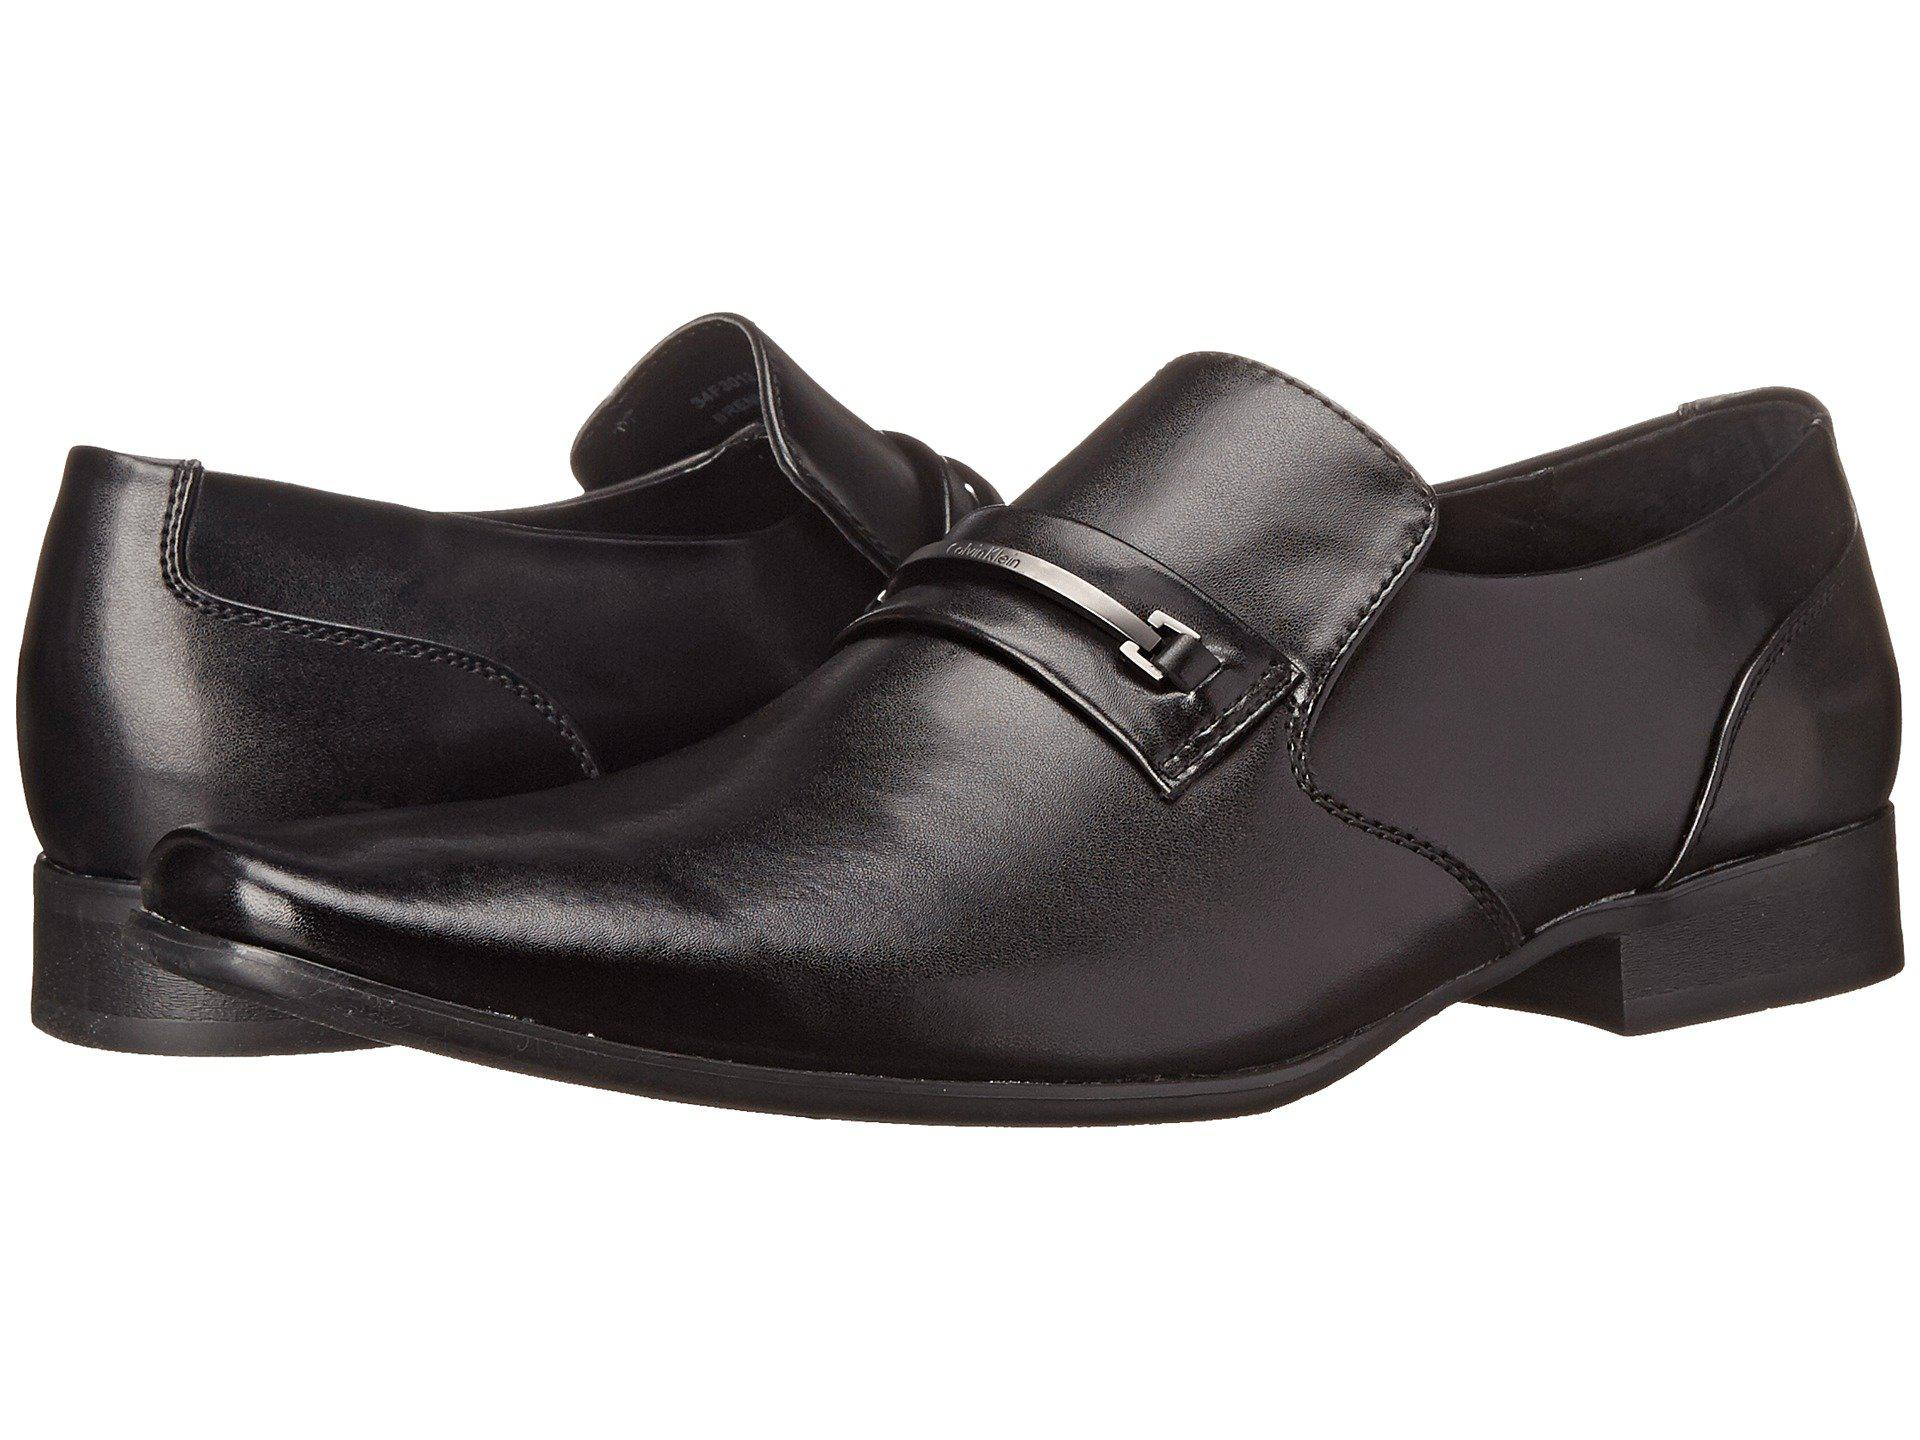 Mens Shoes Calvin Klein Brennan Black